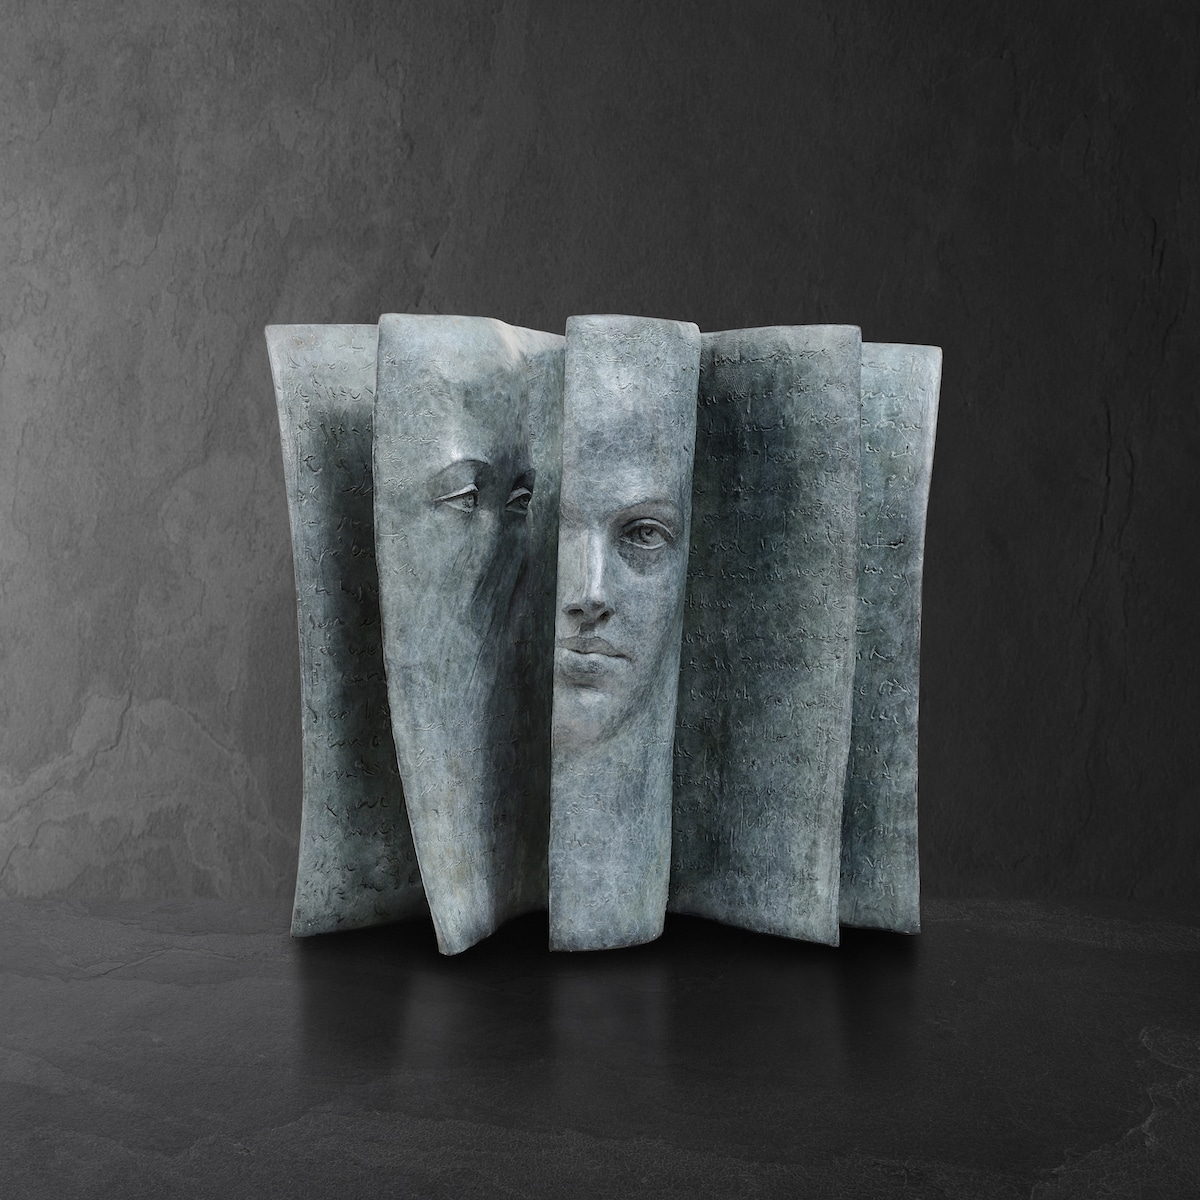 guess-paola-grizi-literary-sculptures.jpg